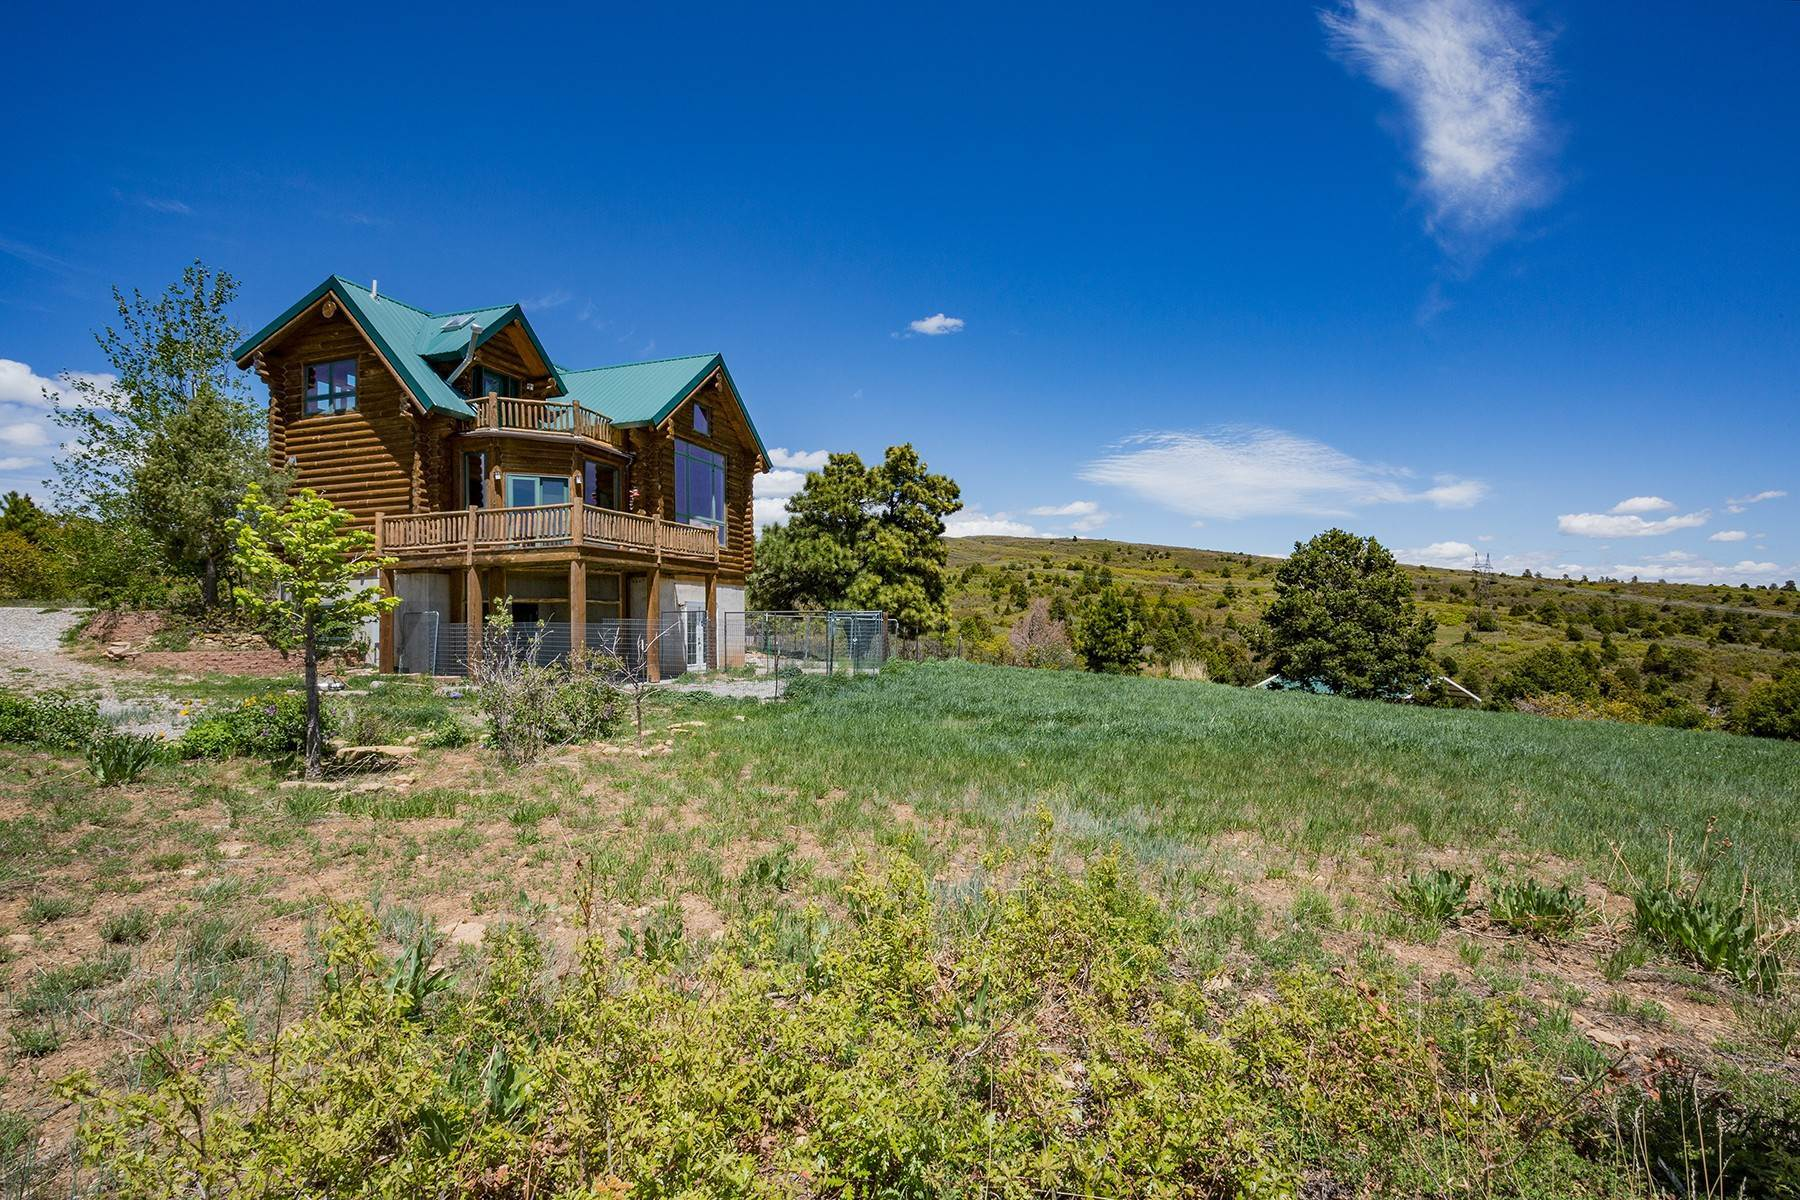 Single Family Homes for Sale at 1554 Roberts Ridge Drive Hesperus, Colorado 81326 United States